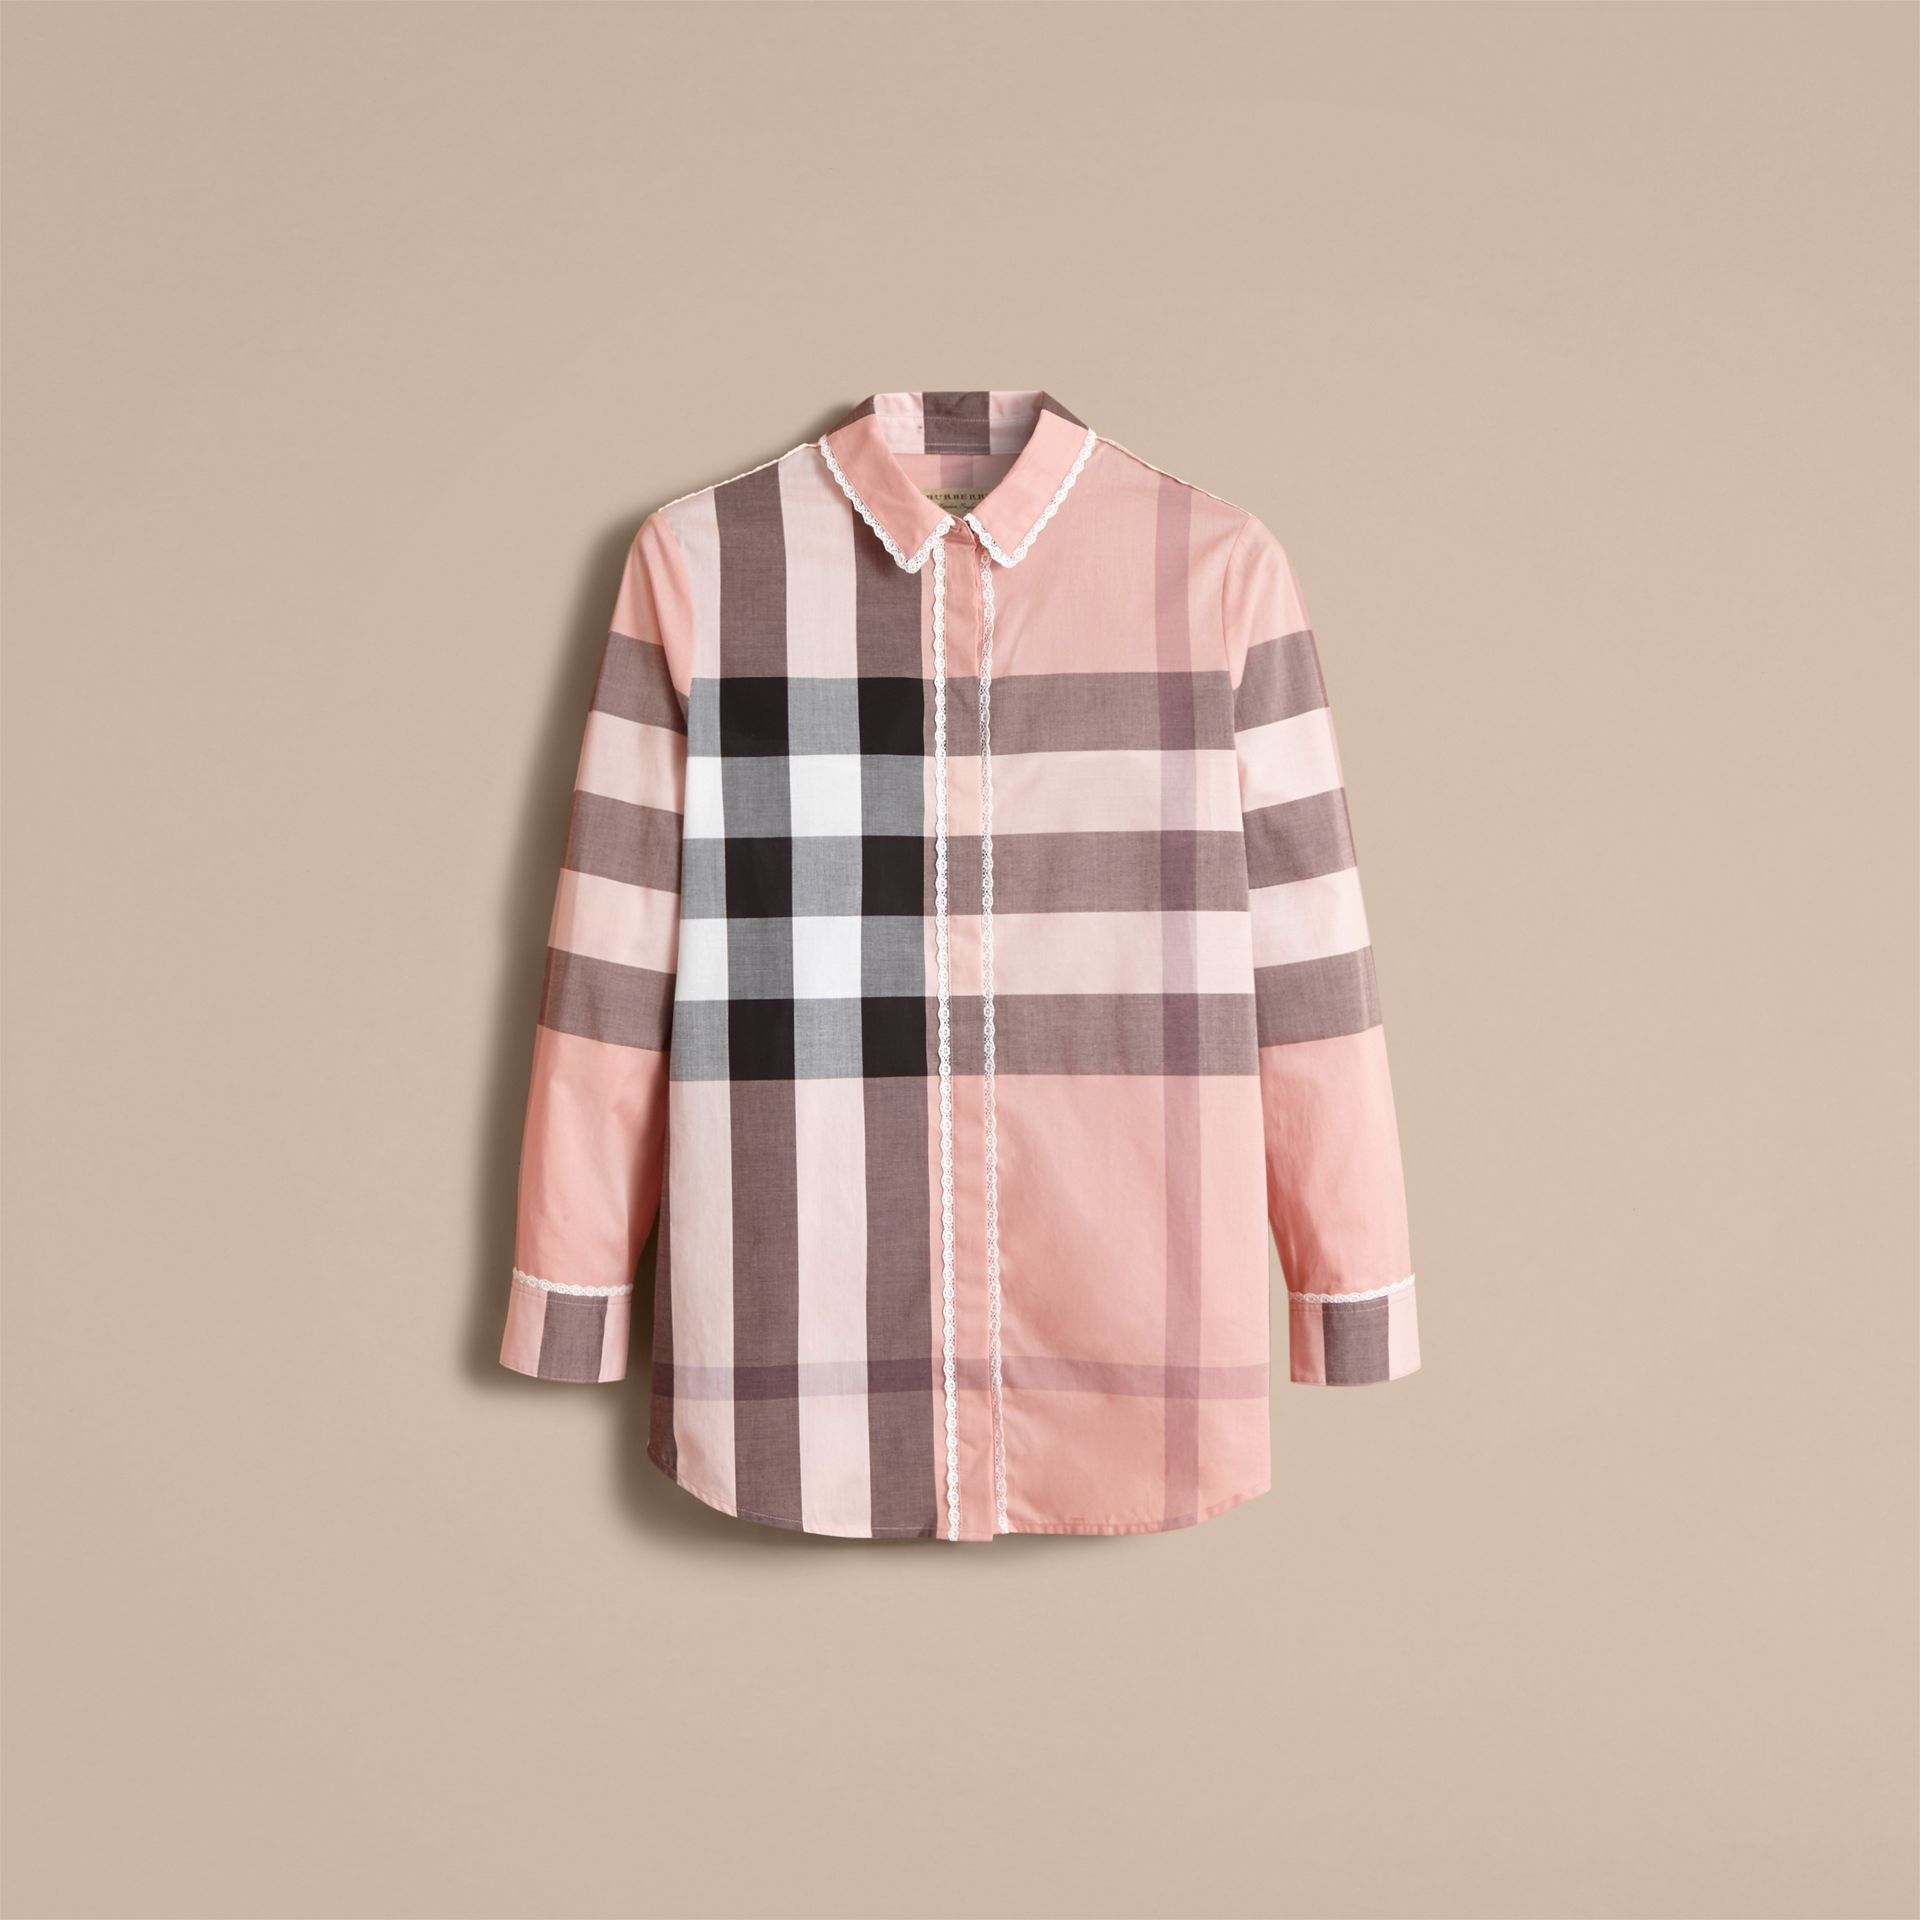 Lace Trim Check Cotton Shirt in Antique Pink - Women | Burberry Canada - gallery image 4